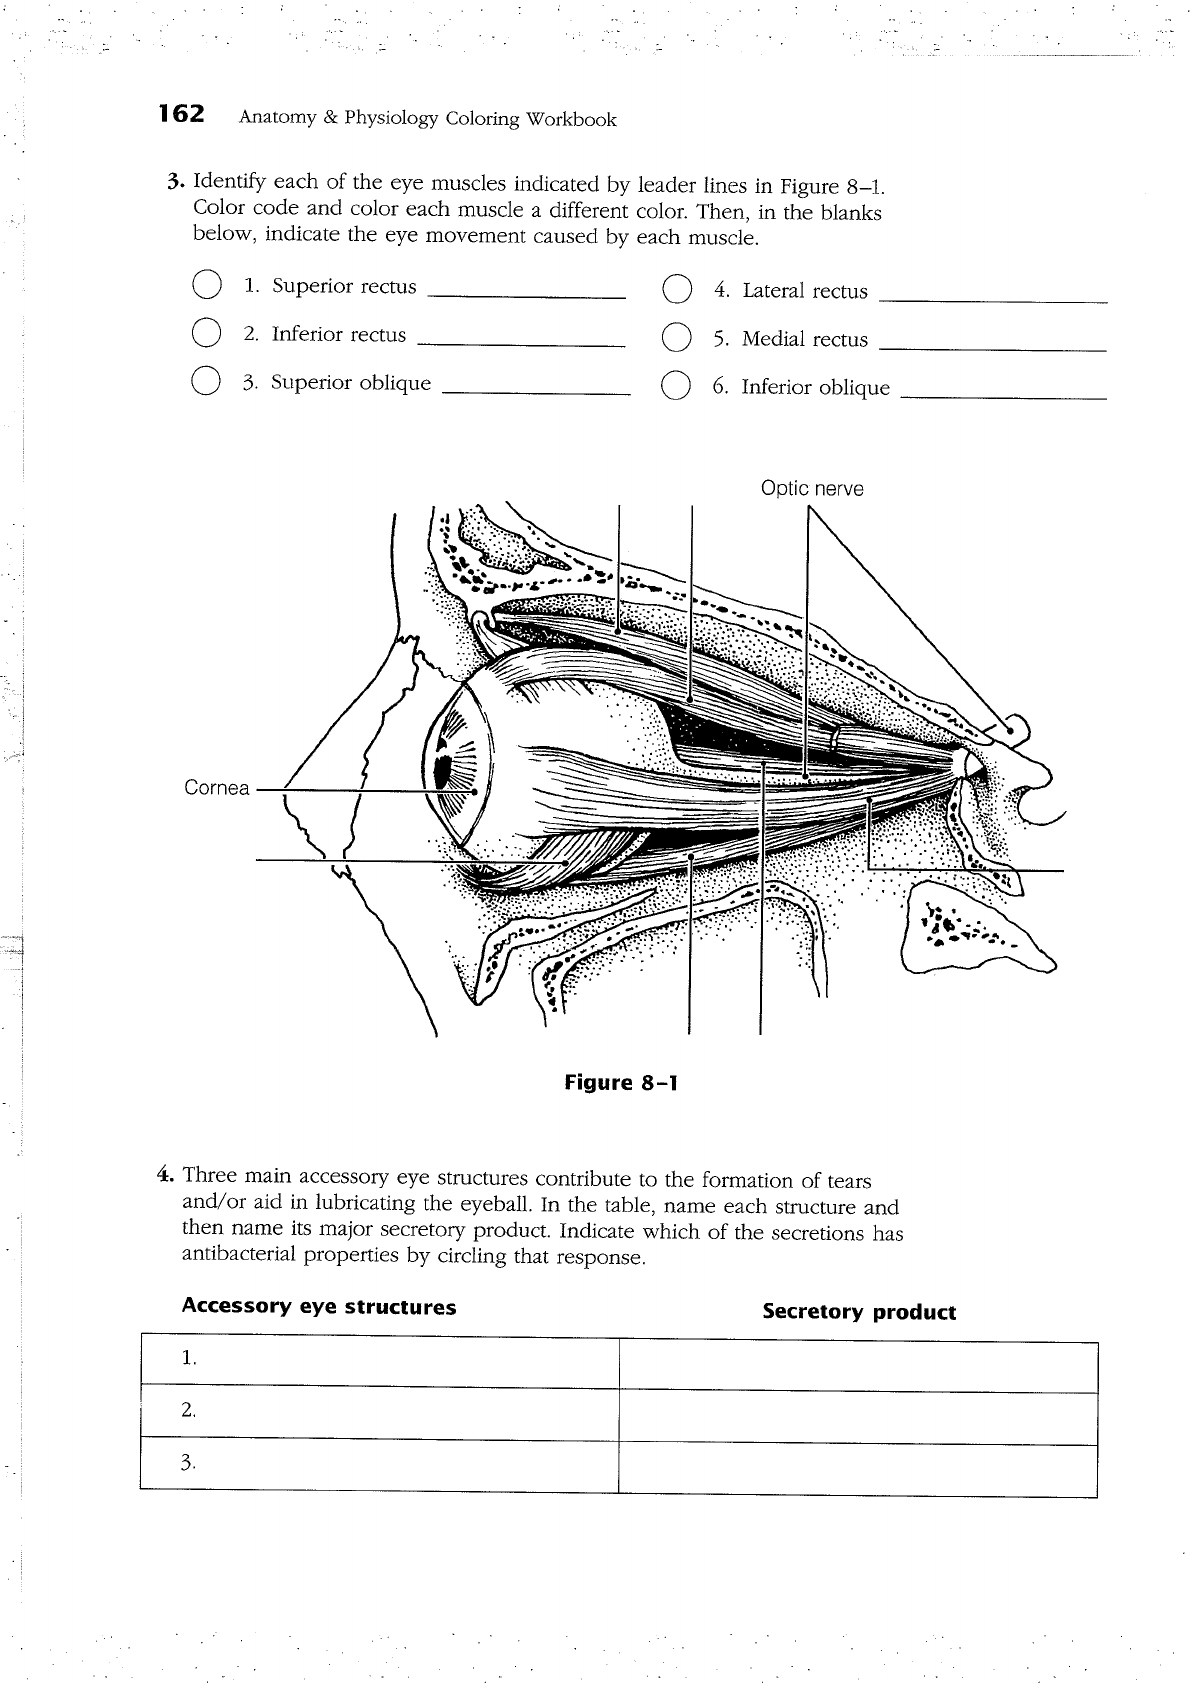 Anatomy And Physiology Coloring Workbook Answers Chapter 7 ...